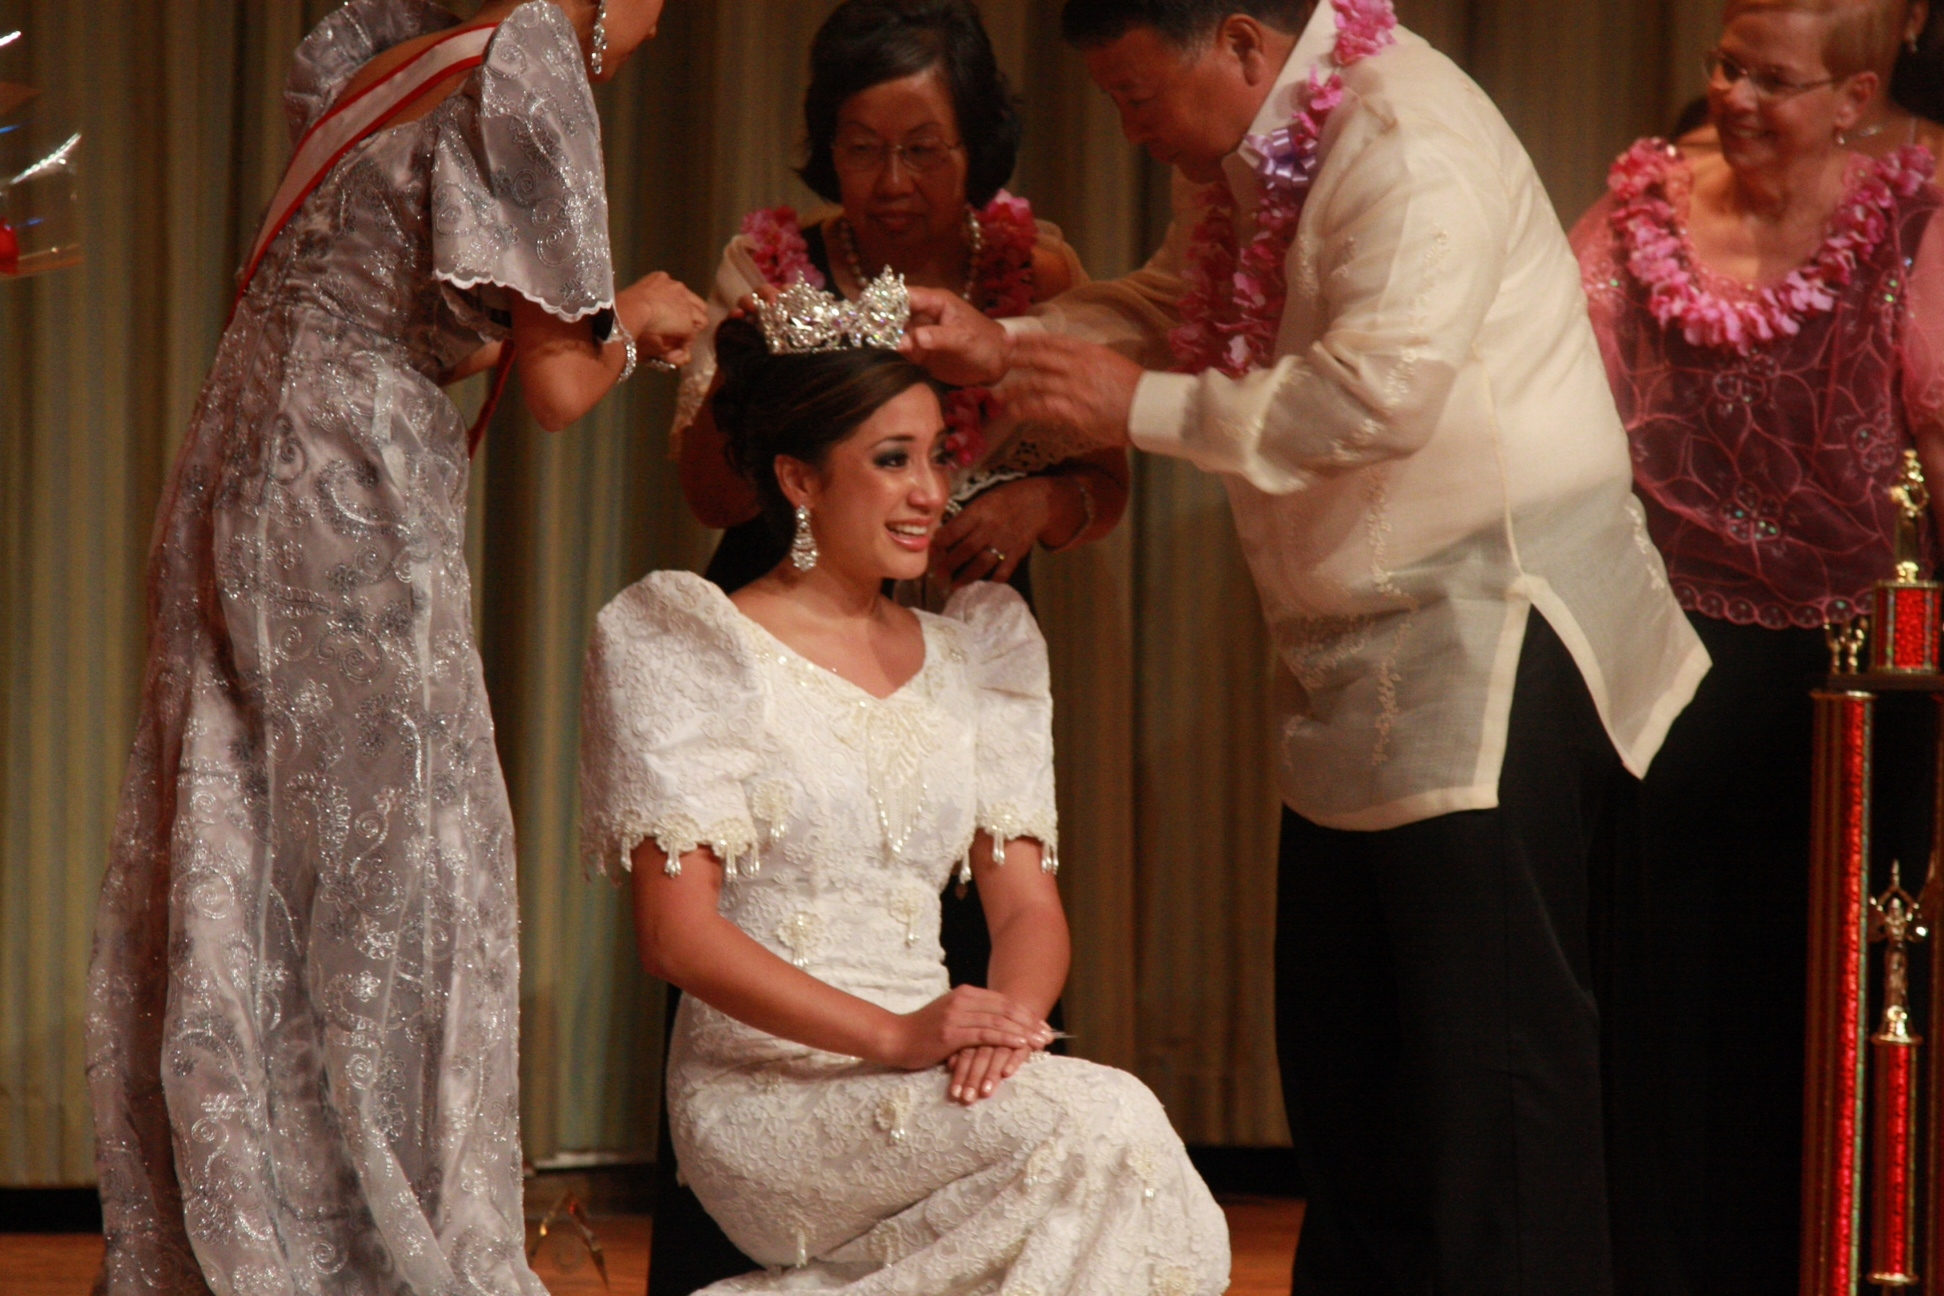 The Mayor, Ann and Miss Maui Filipina 2010 crown Shelby